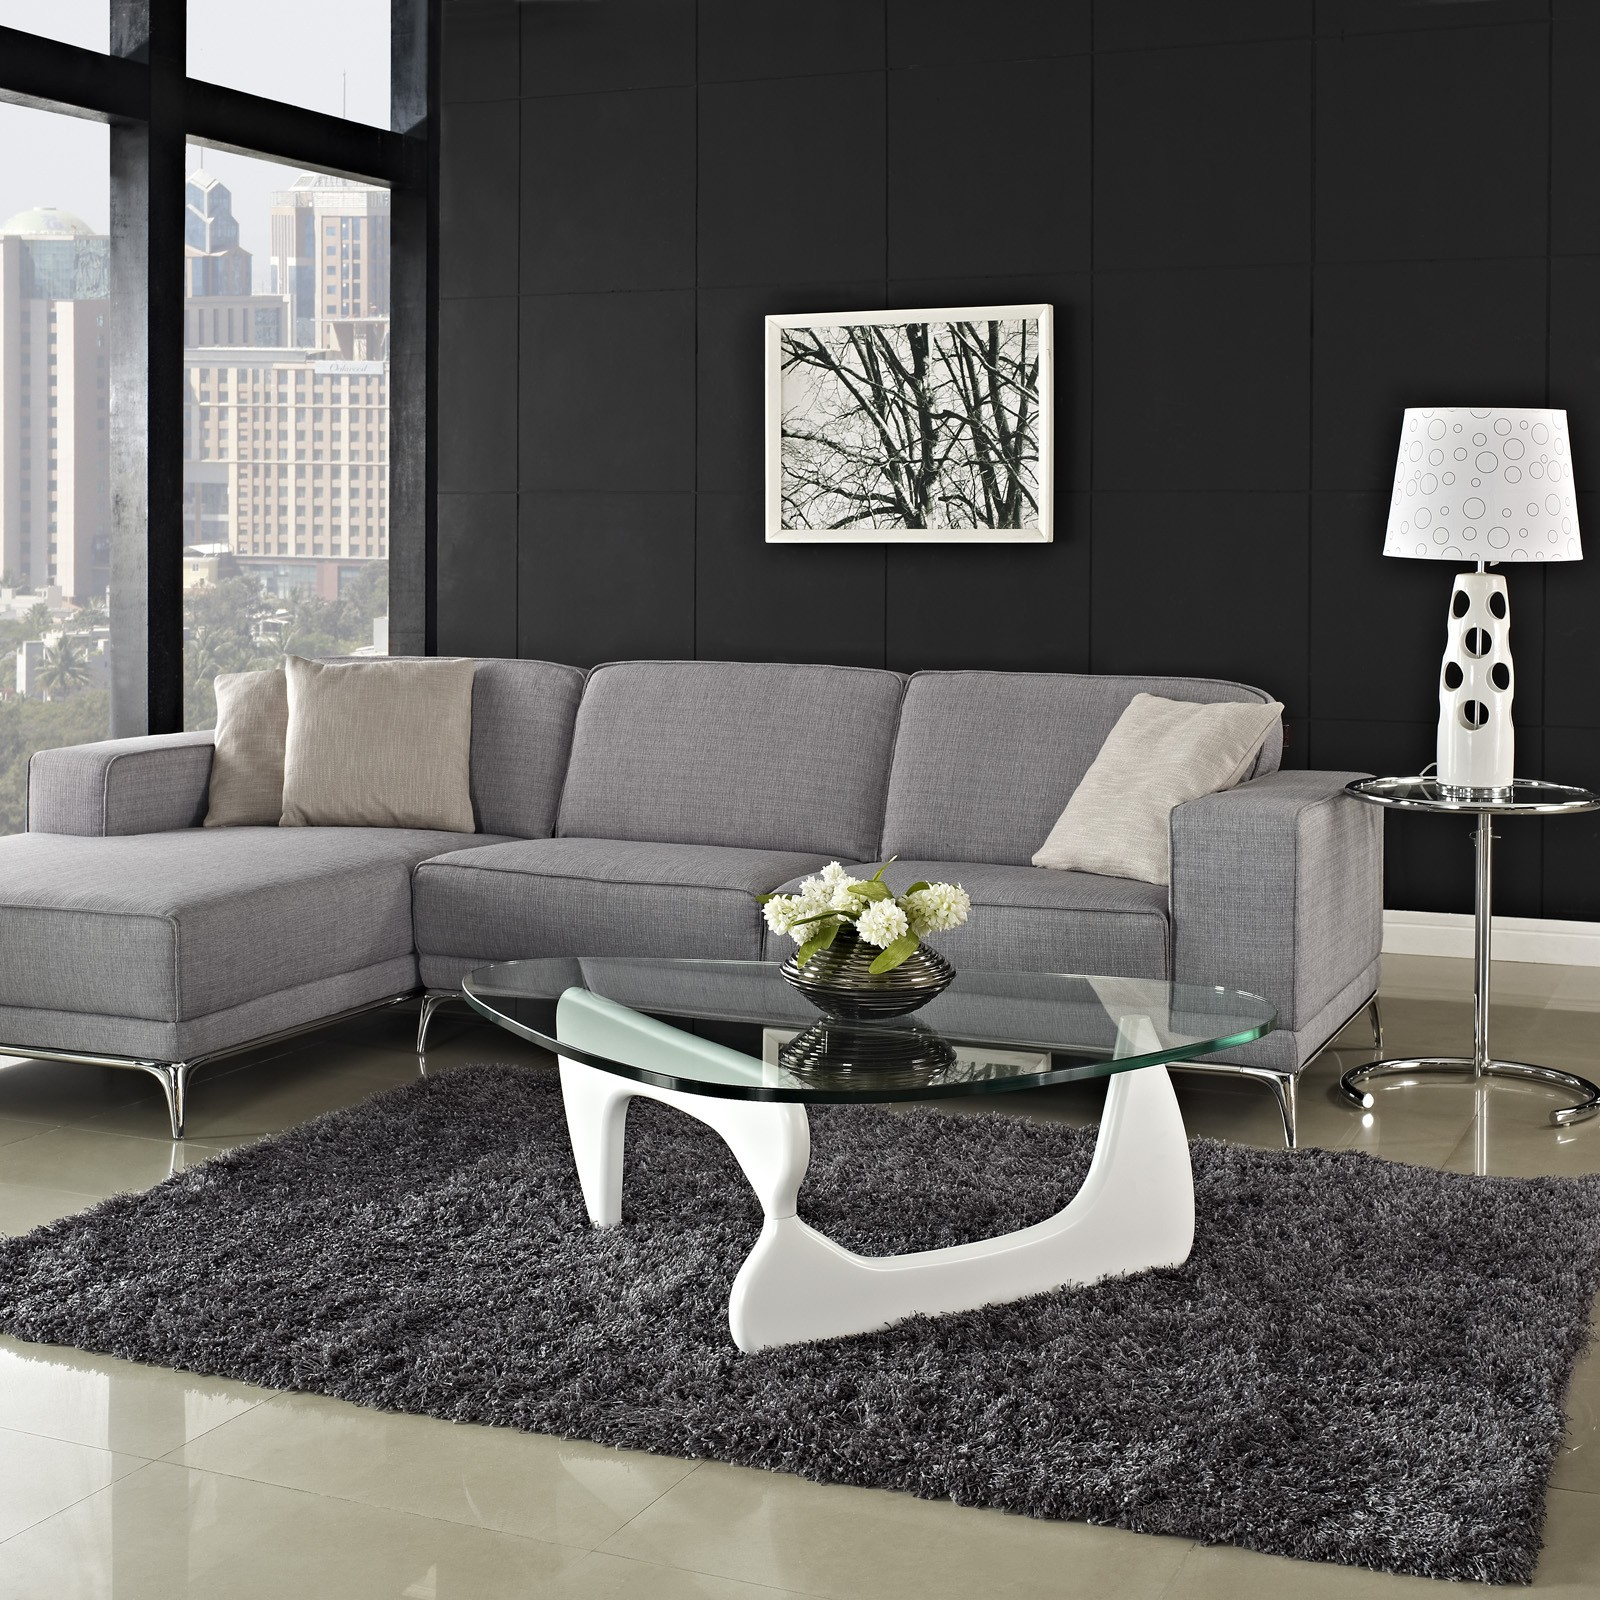 Teppich Unter Couchtisch Contemporary Coffee Tables Design For Your Living Room